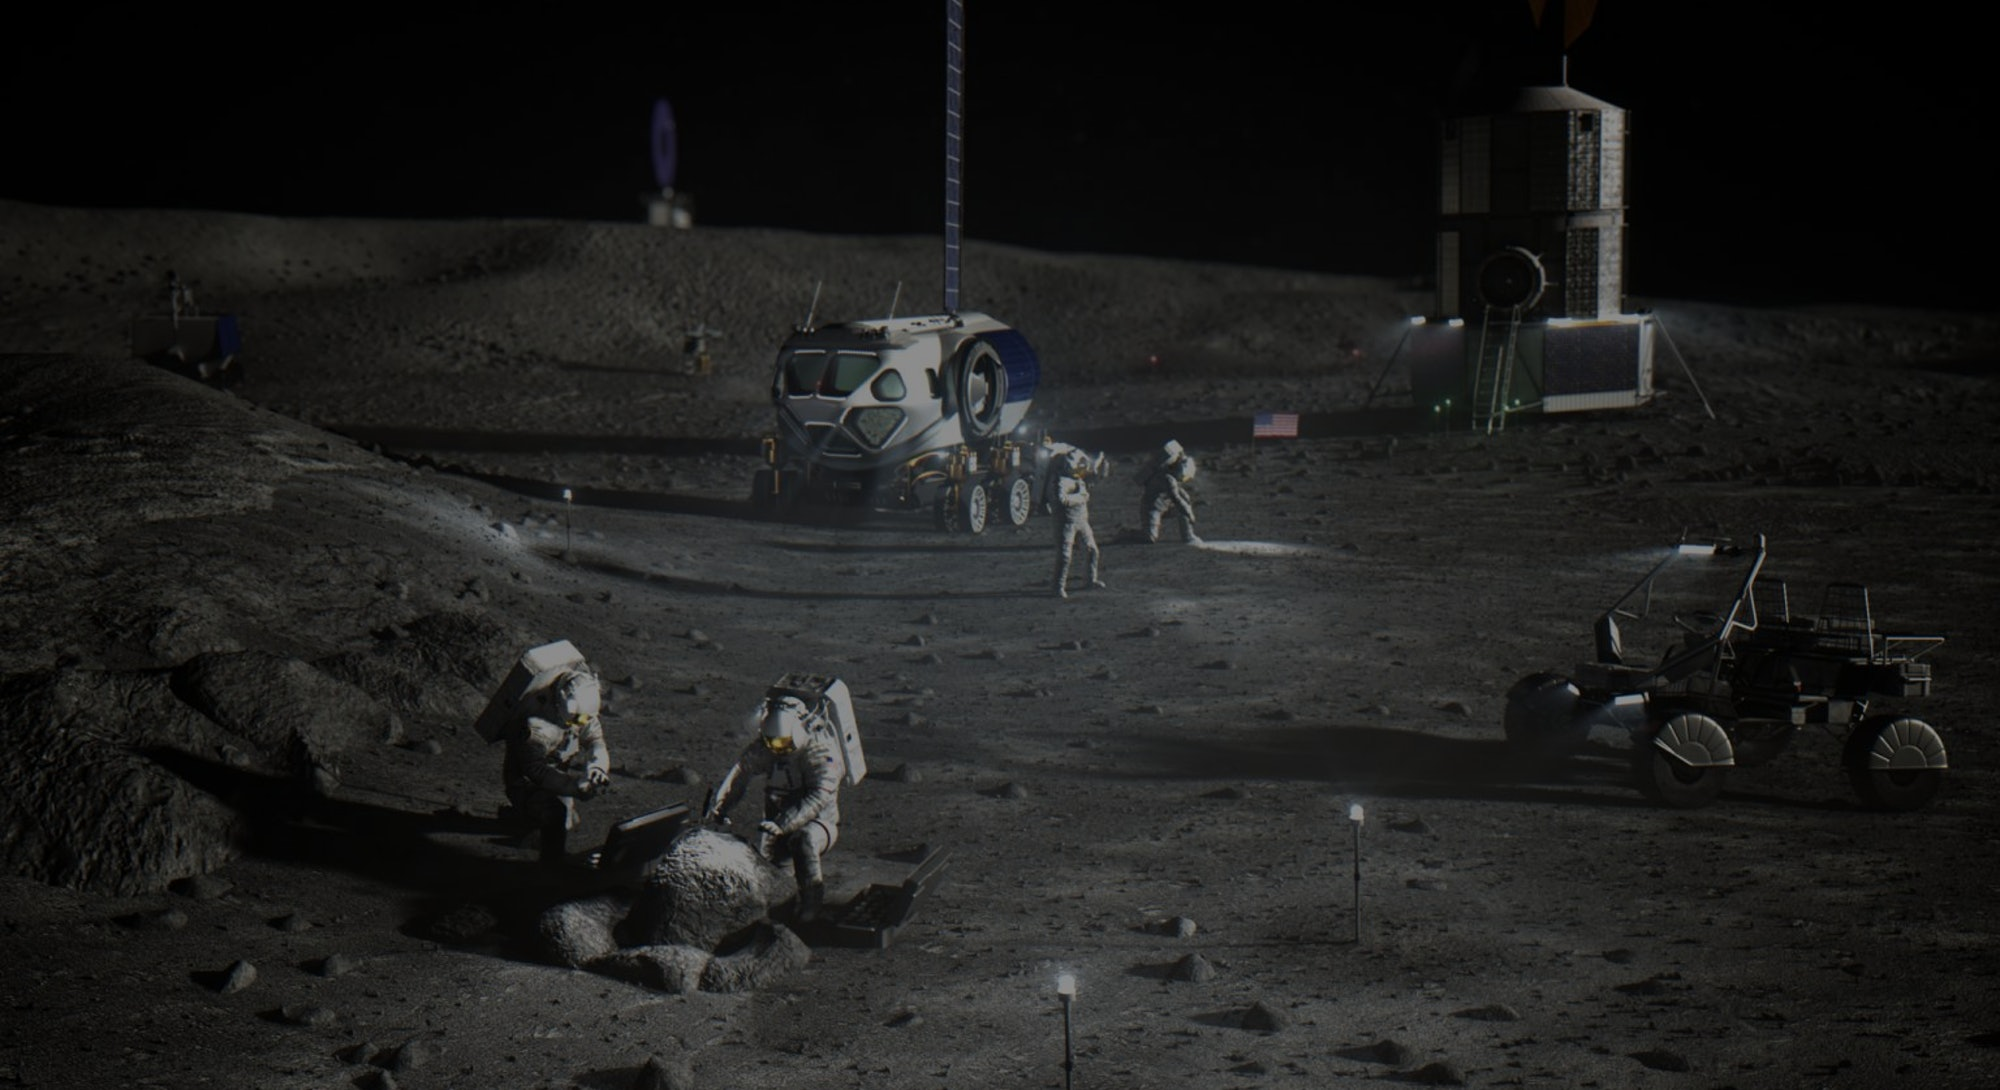 Illustration of NASA astronauts on the lunar South Pole